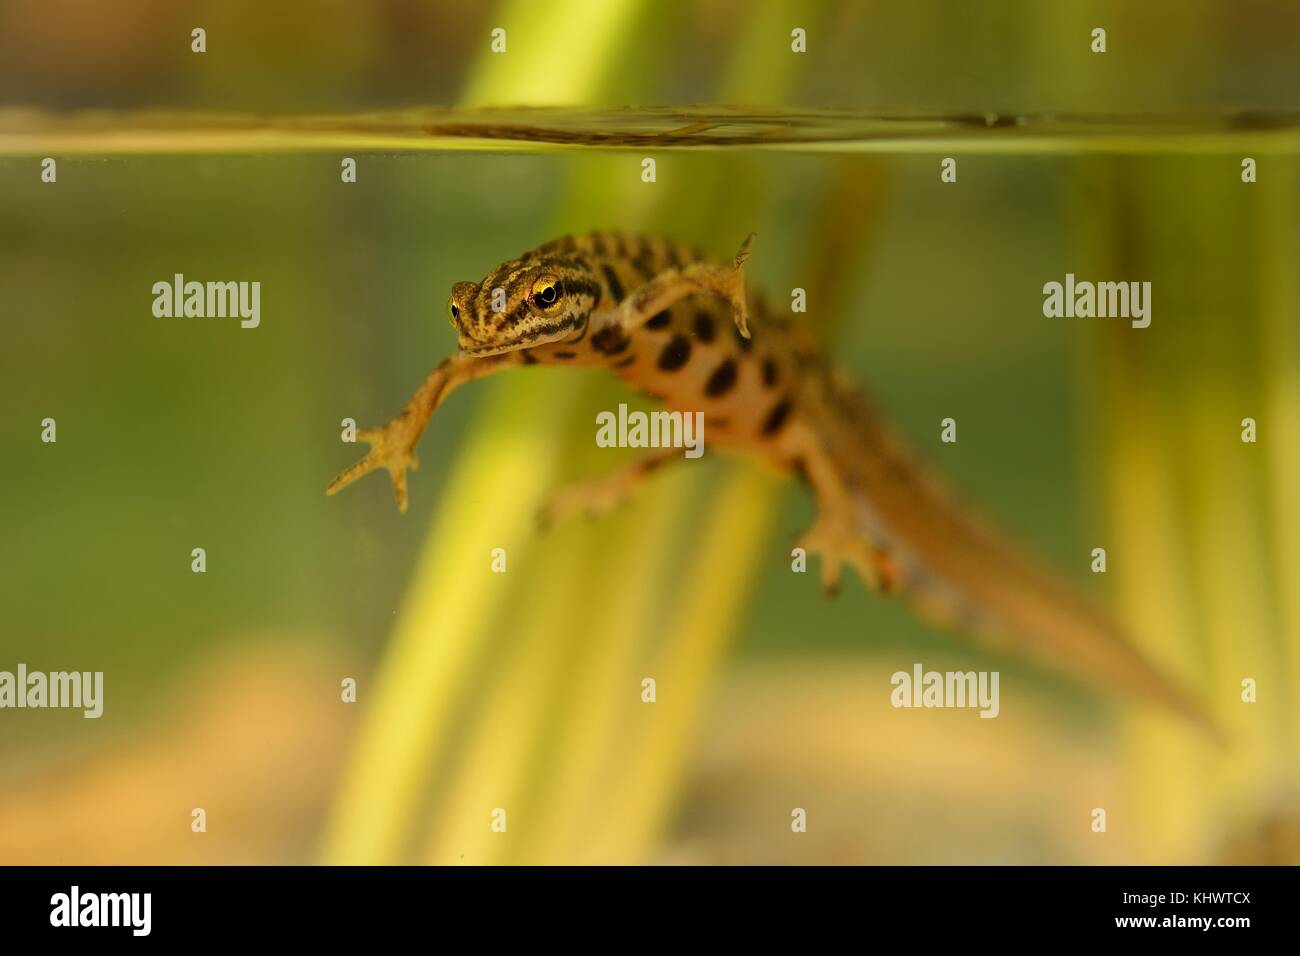 Smooth newt captured under water in the small lagoon. - Stock Image